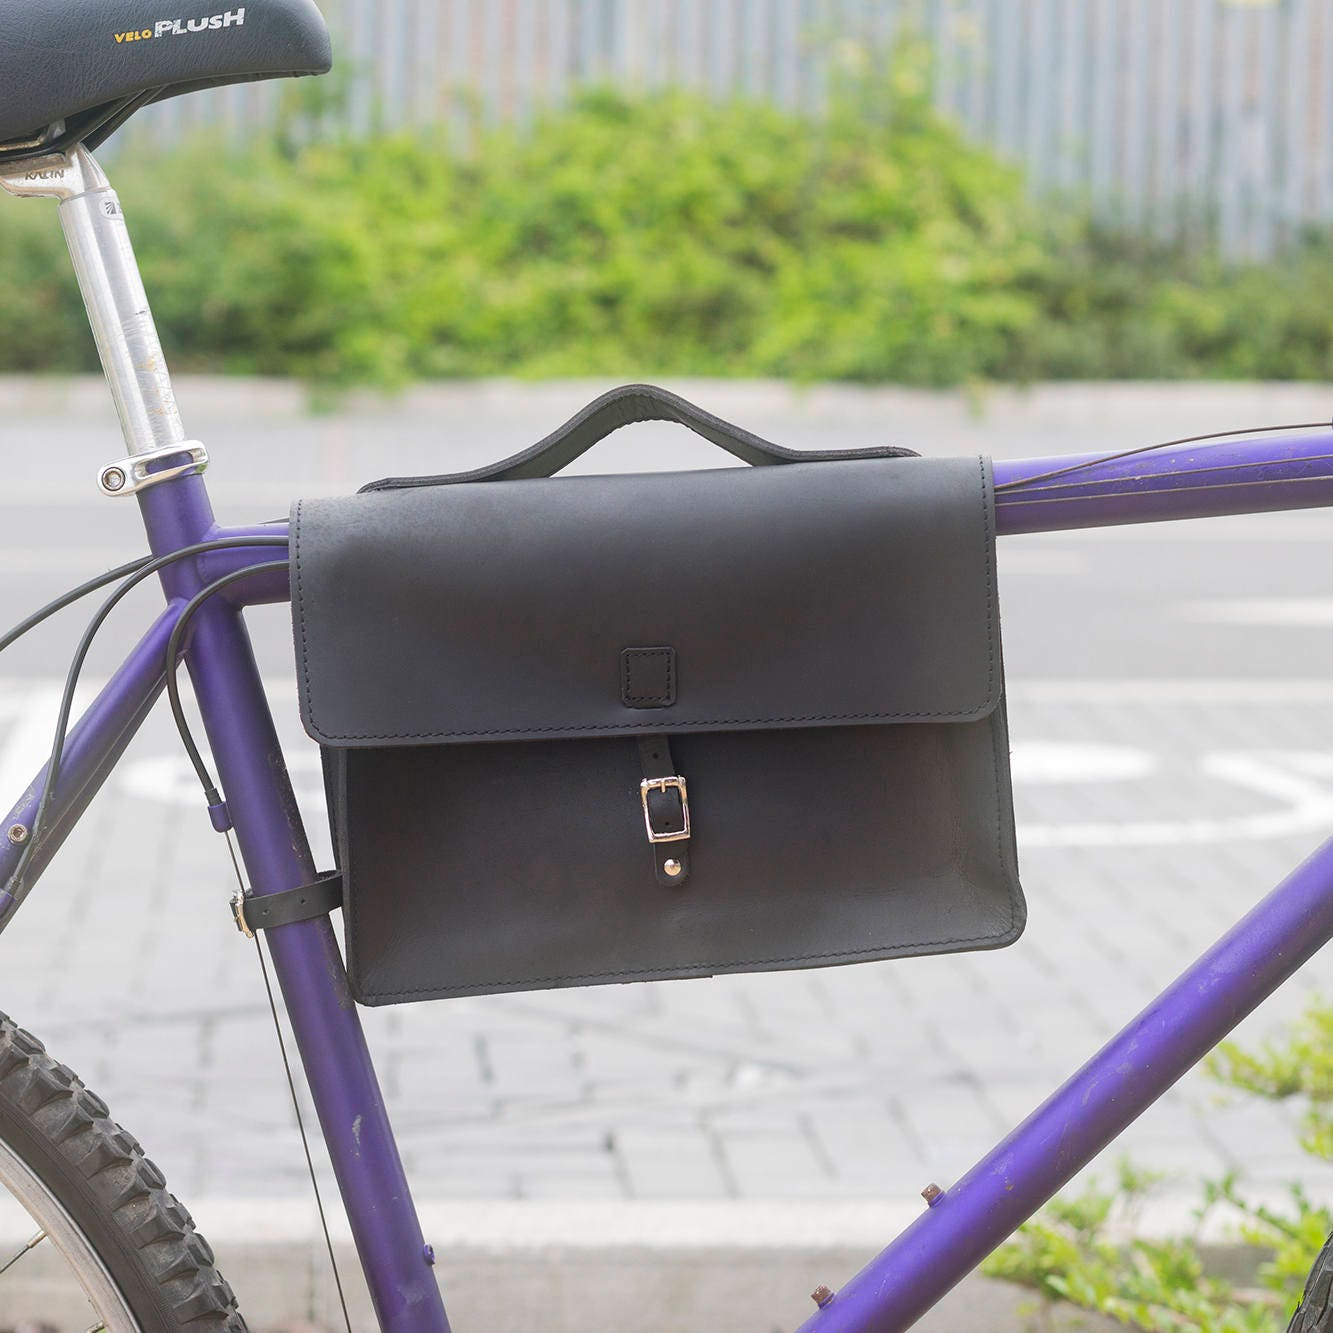 Bicycle Frame Satchel Bag Handcrafted Natural Leather BLACK 11.8x8.1x2.2